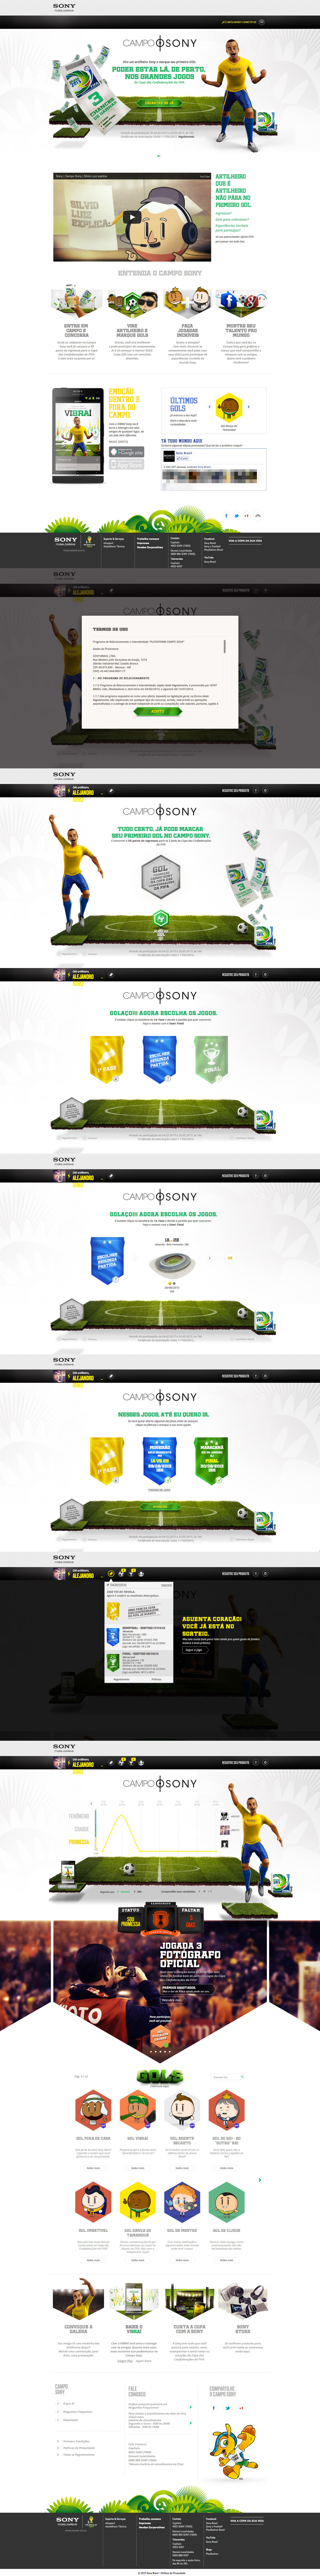 25 Extremely Eye-Catching Geometric Website Designs